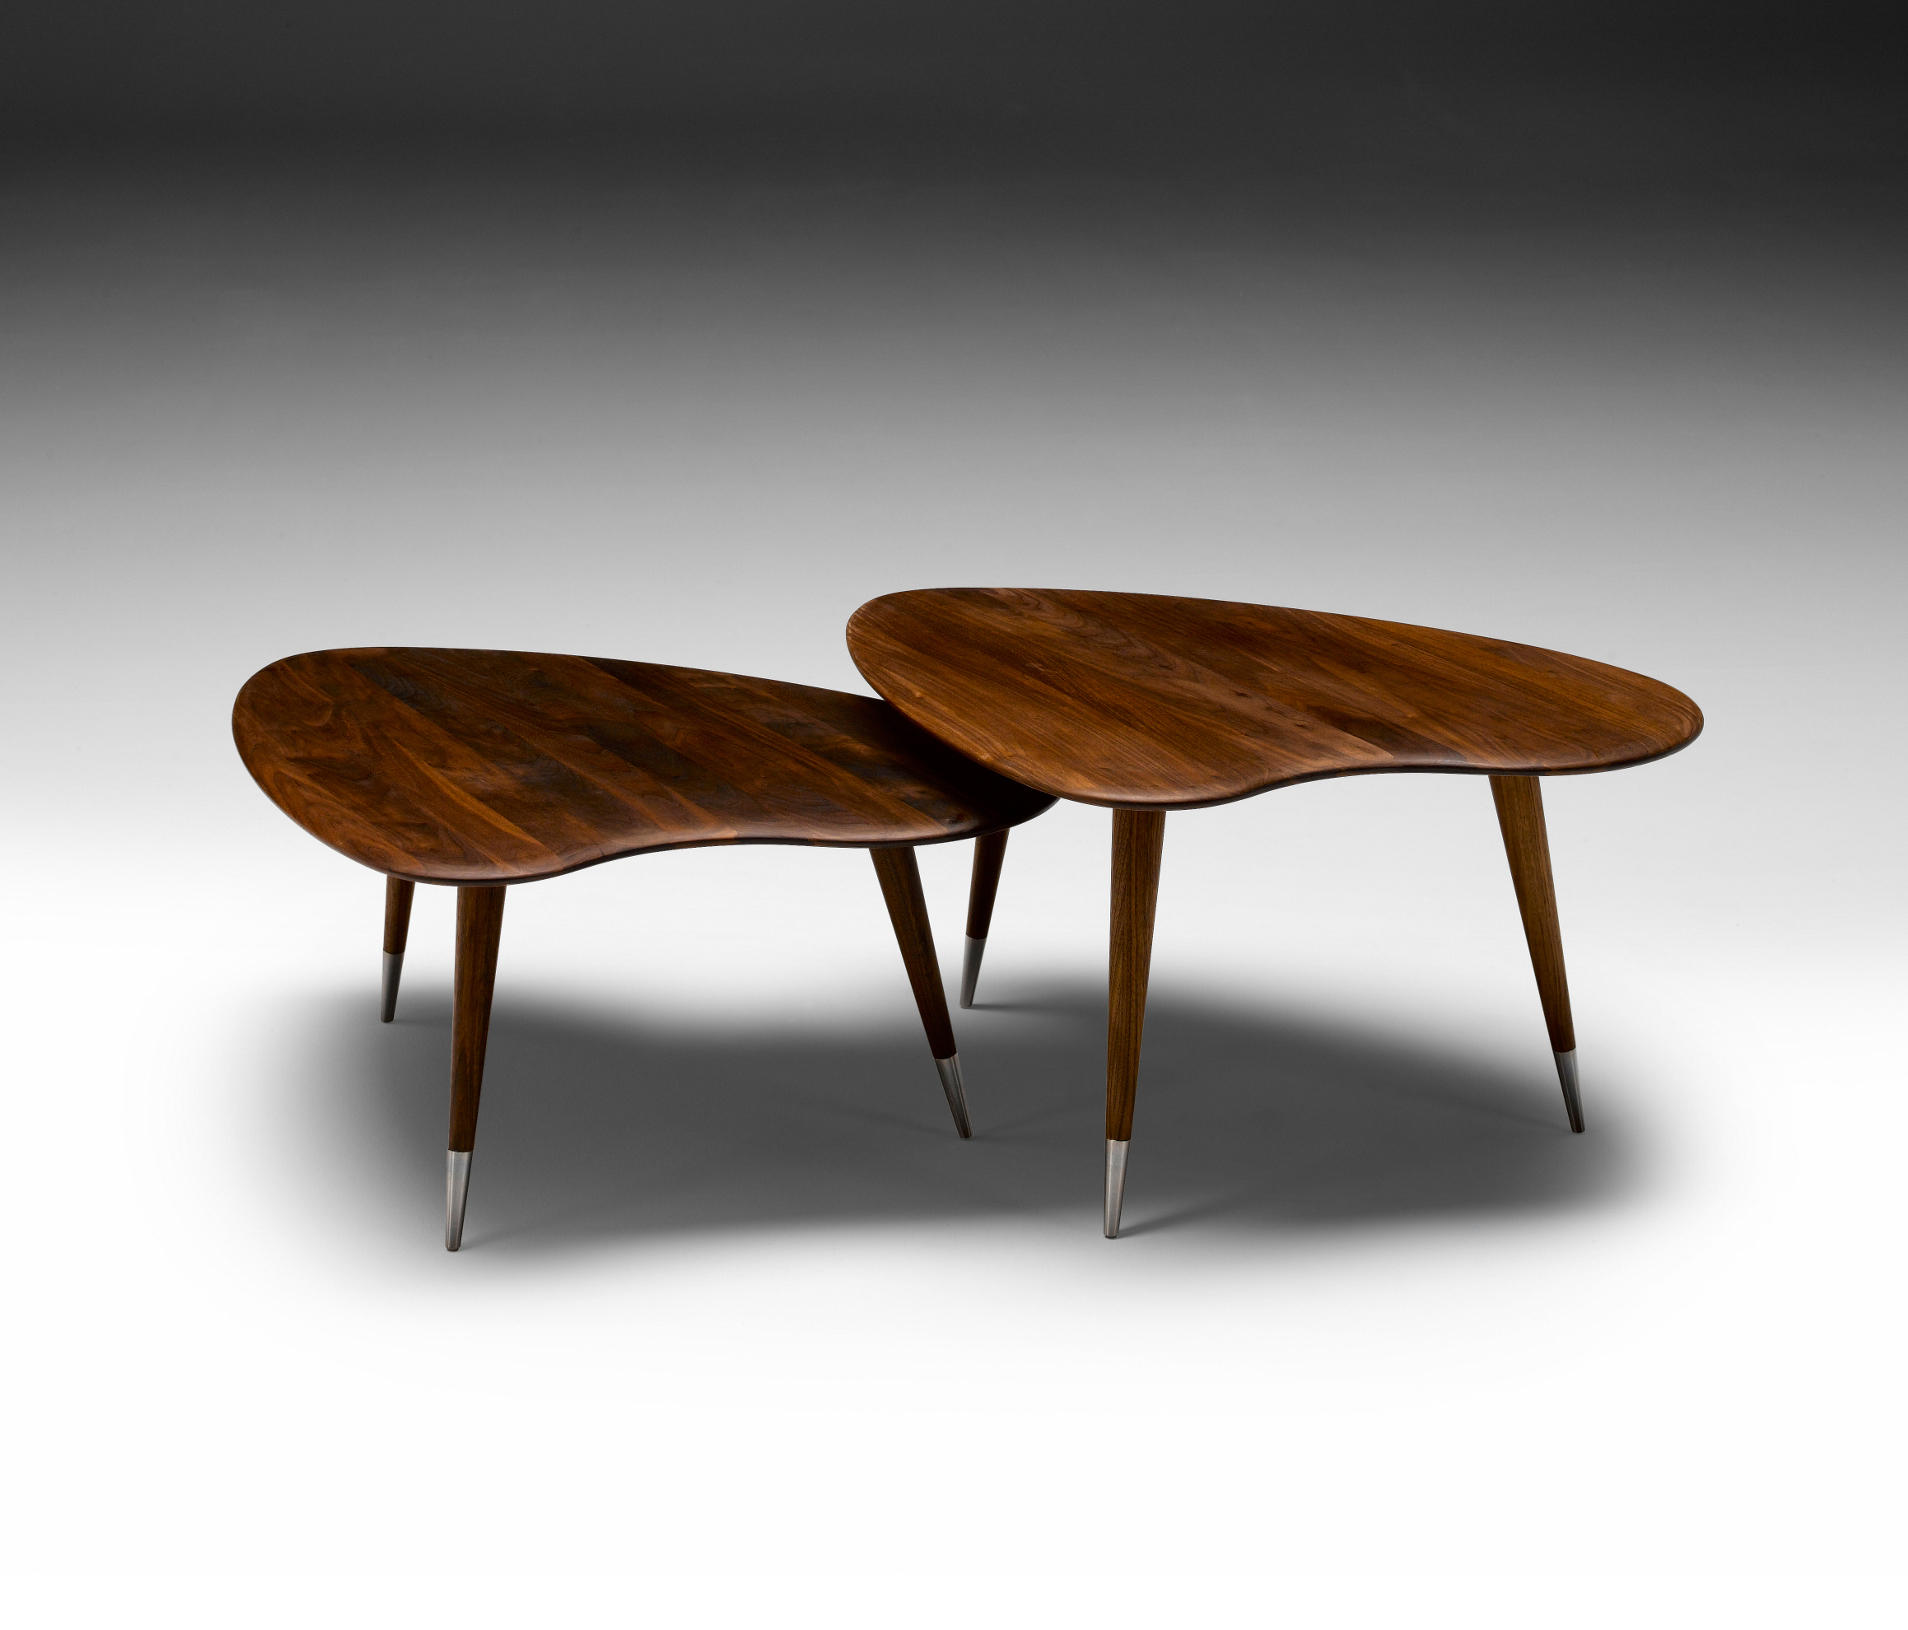 Ak 2560 Coffee Table Coffee Tables From Naver Collection Architonic: collectors coffee table